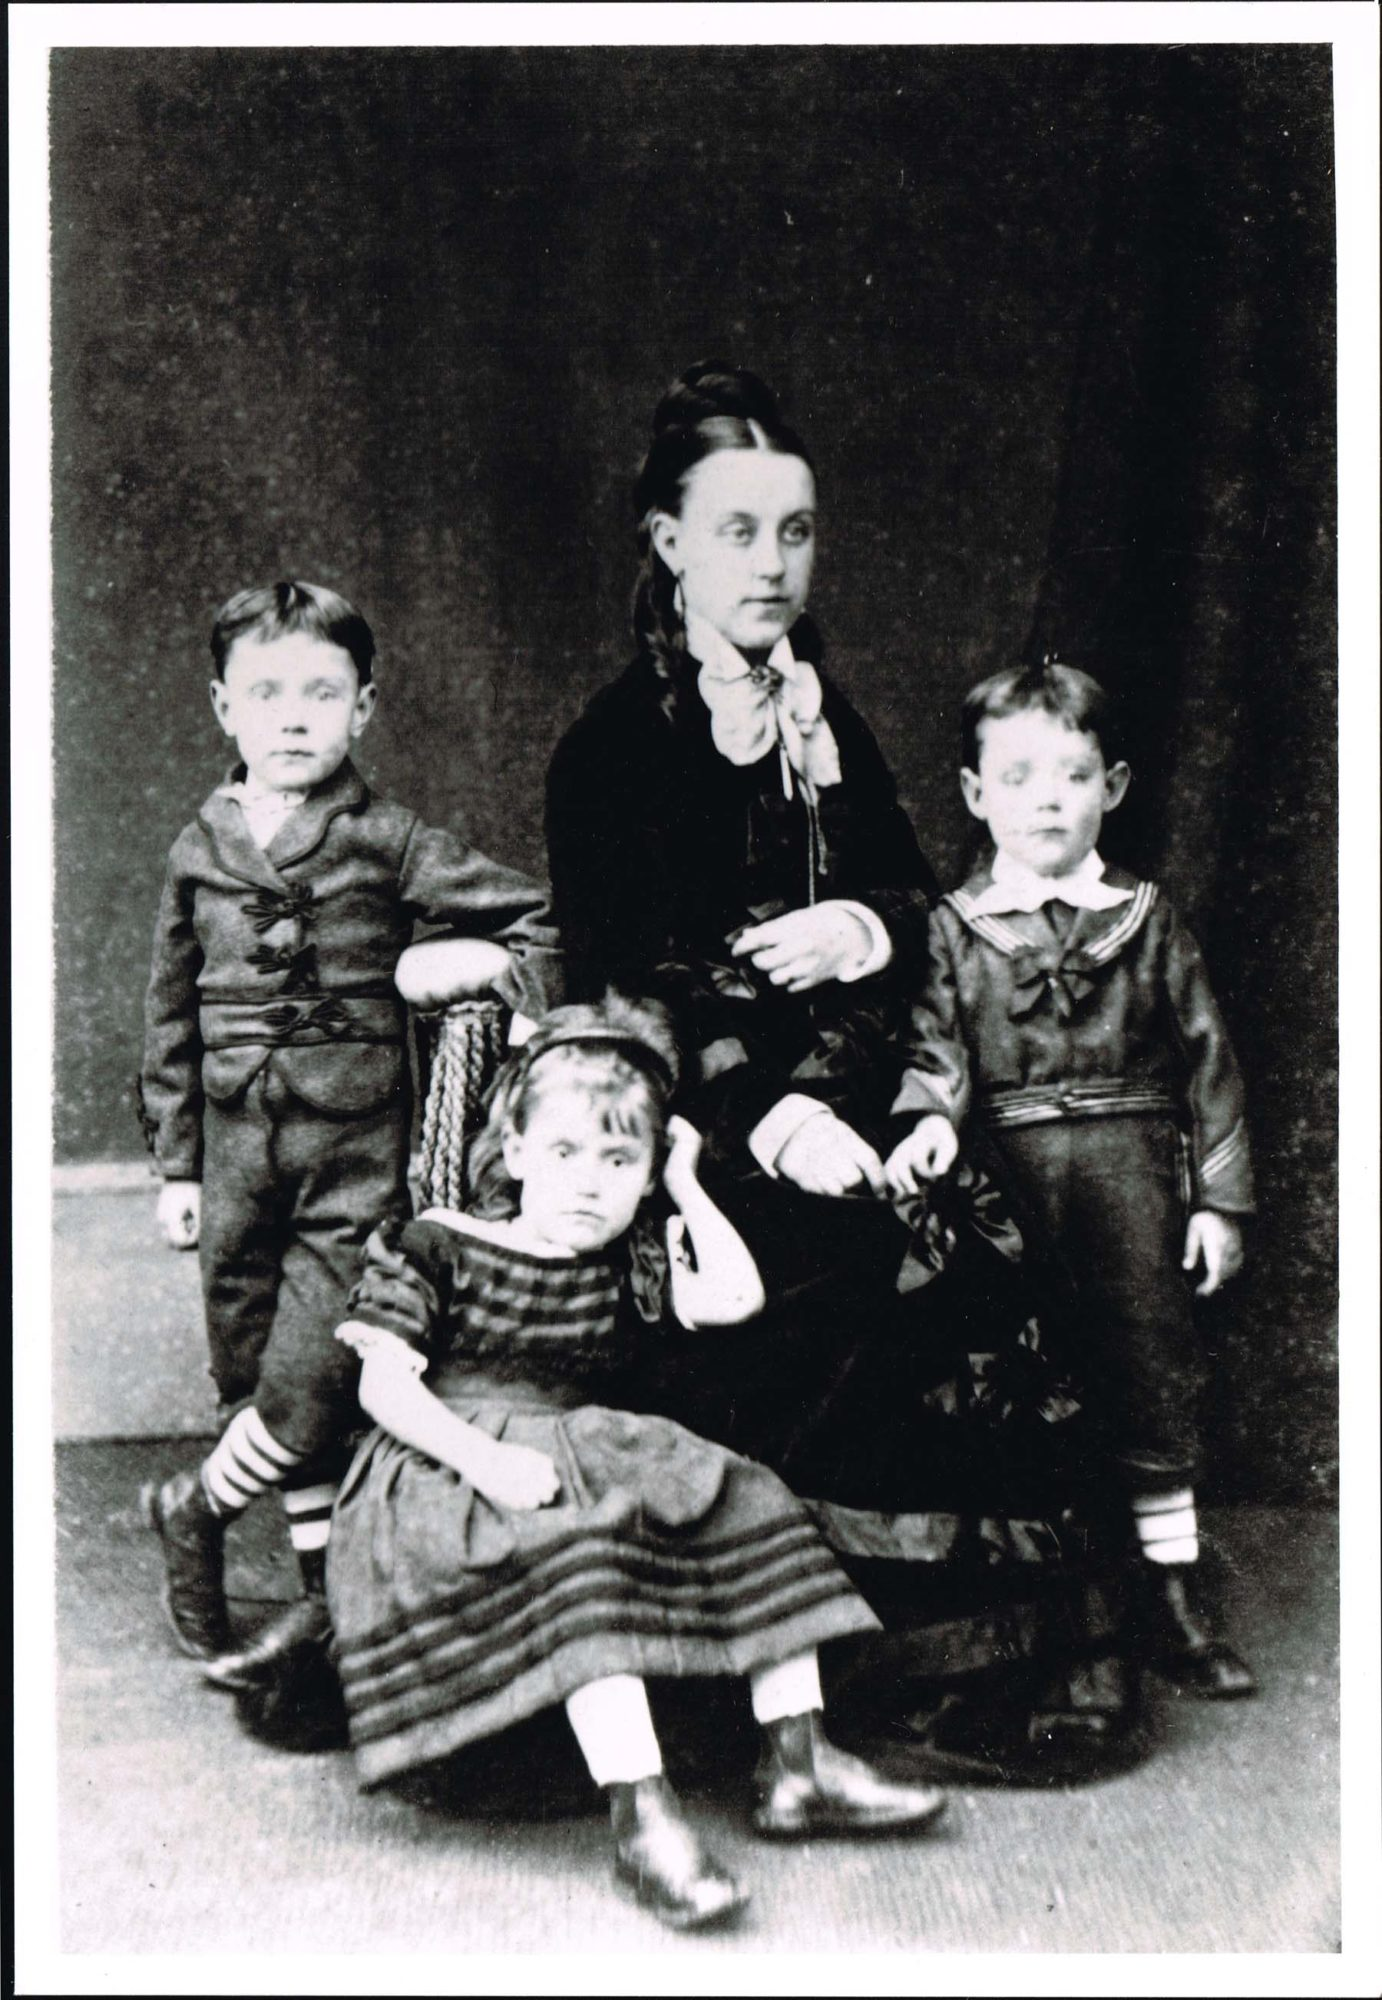 Black and white photograph of Agnes Cayzer with her three eldest children, Charles, Mamie and Jack in 1873